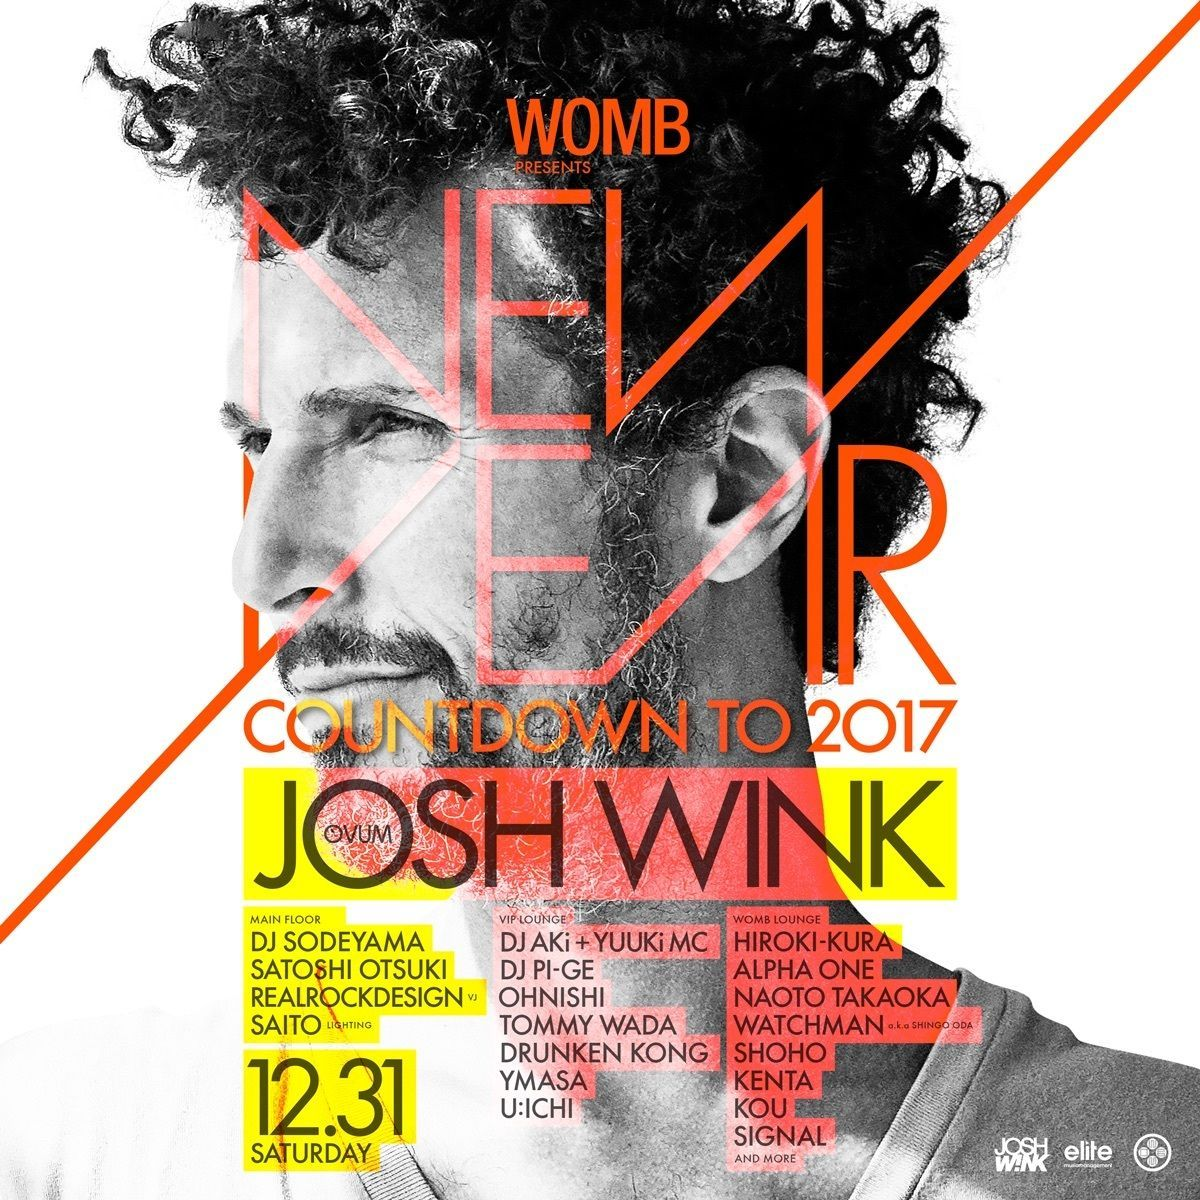 WOMB PRESENTS NEW YEAR COUNTDOWN TO 2017